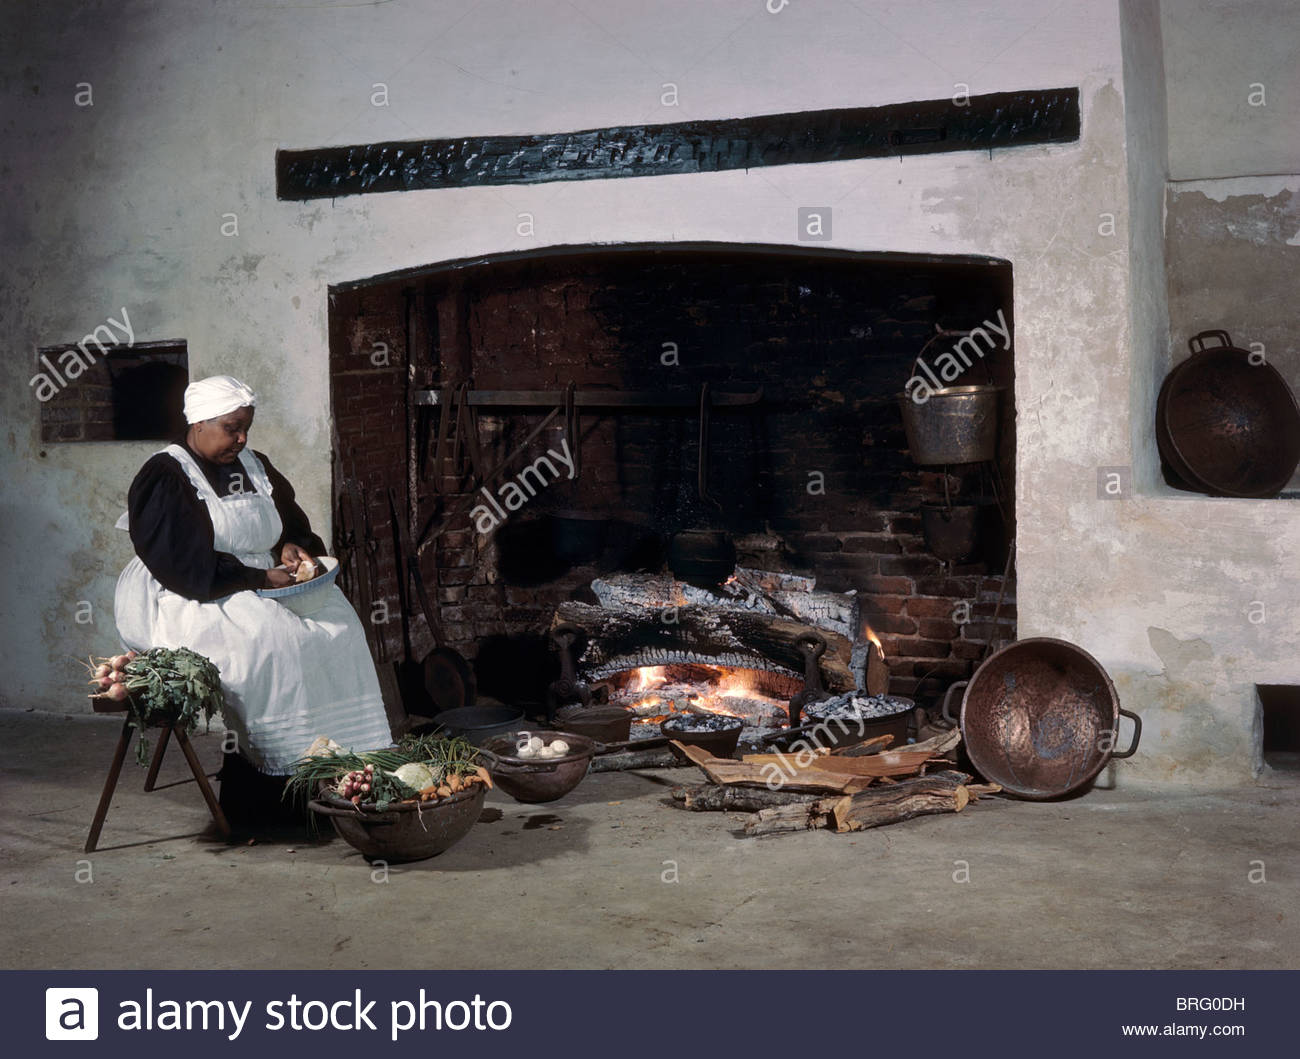 Woman in period costume works in front of large kitchen fireplace. - Stock Image